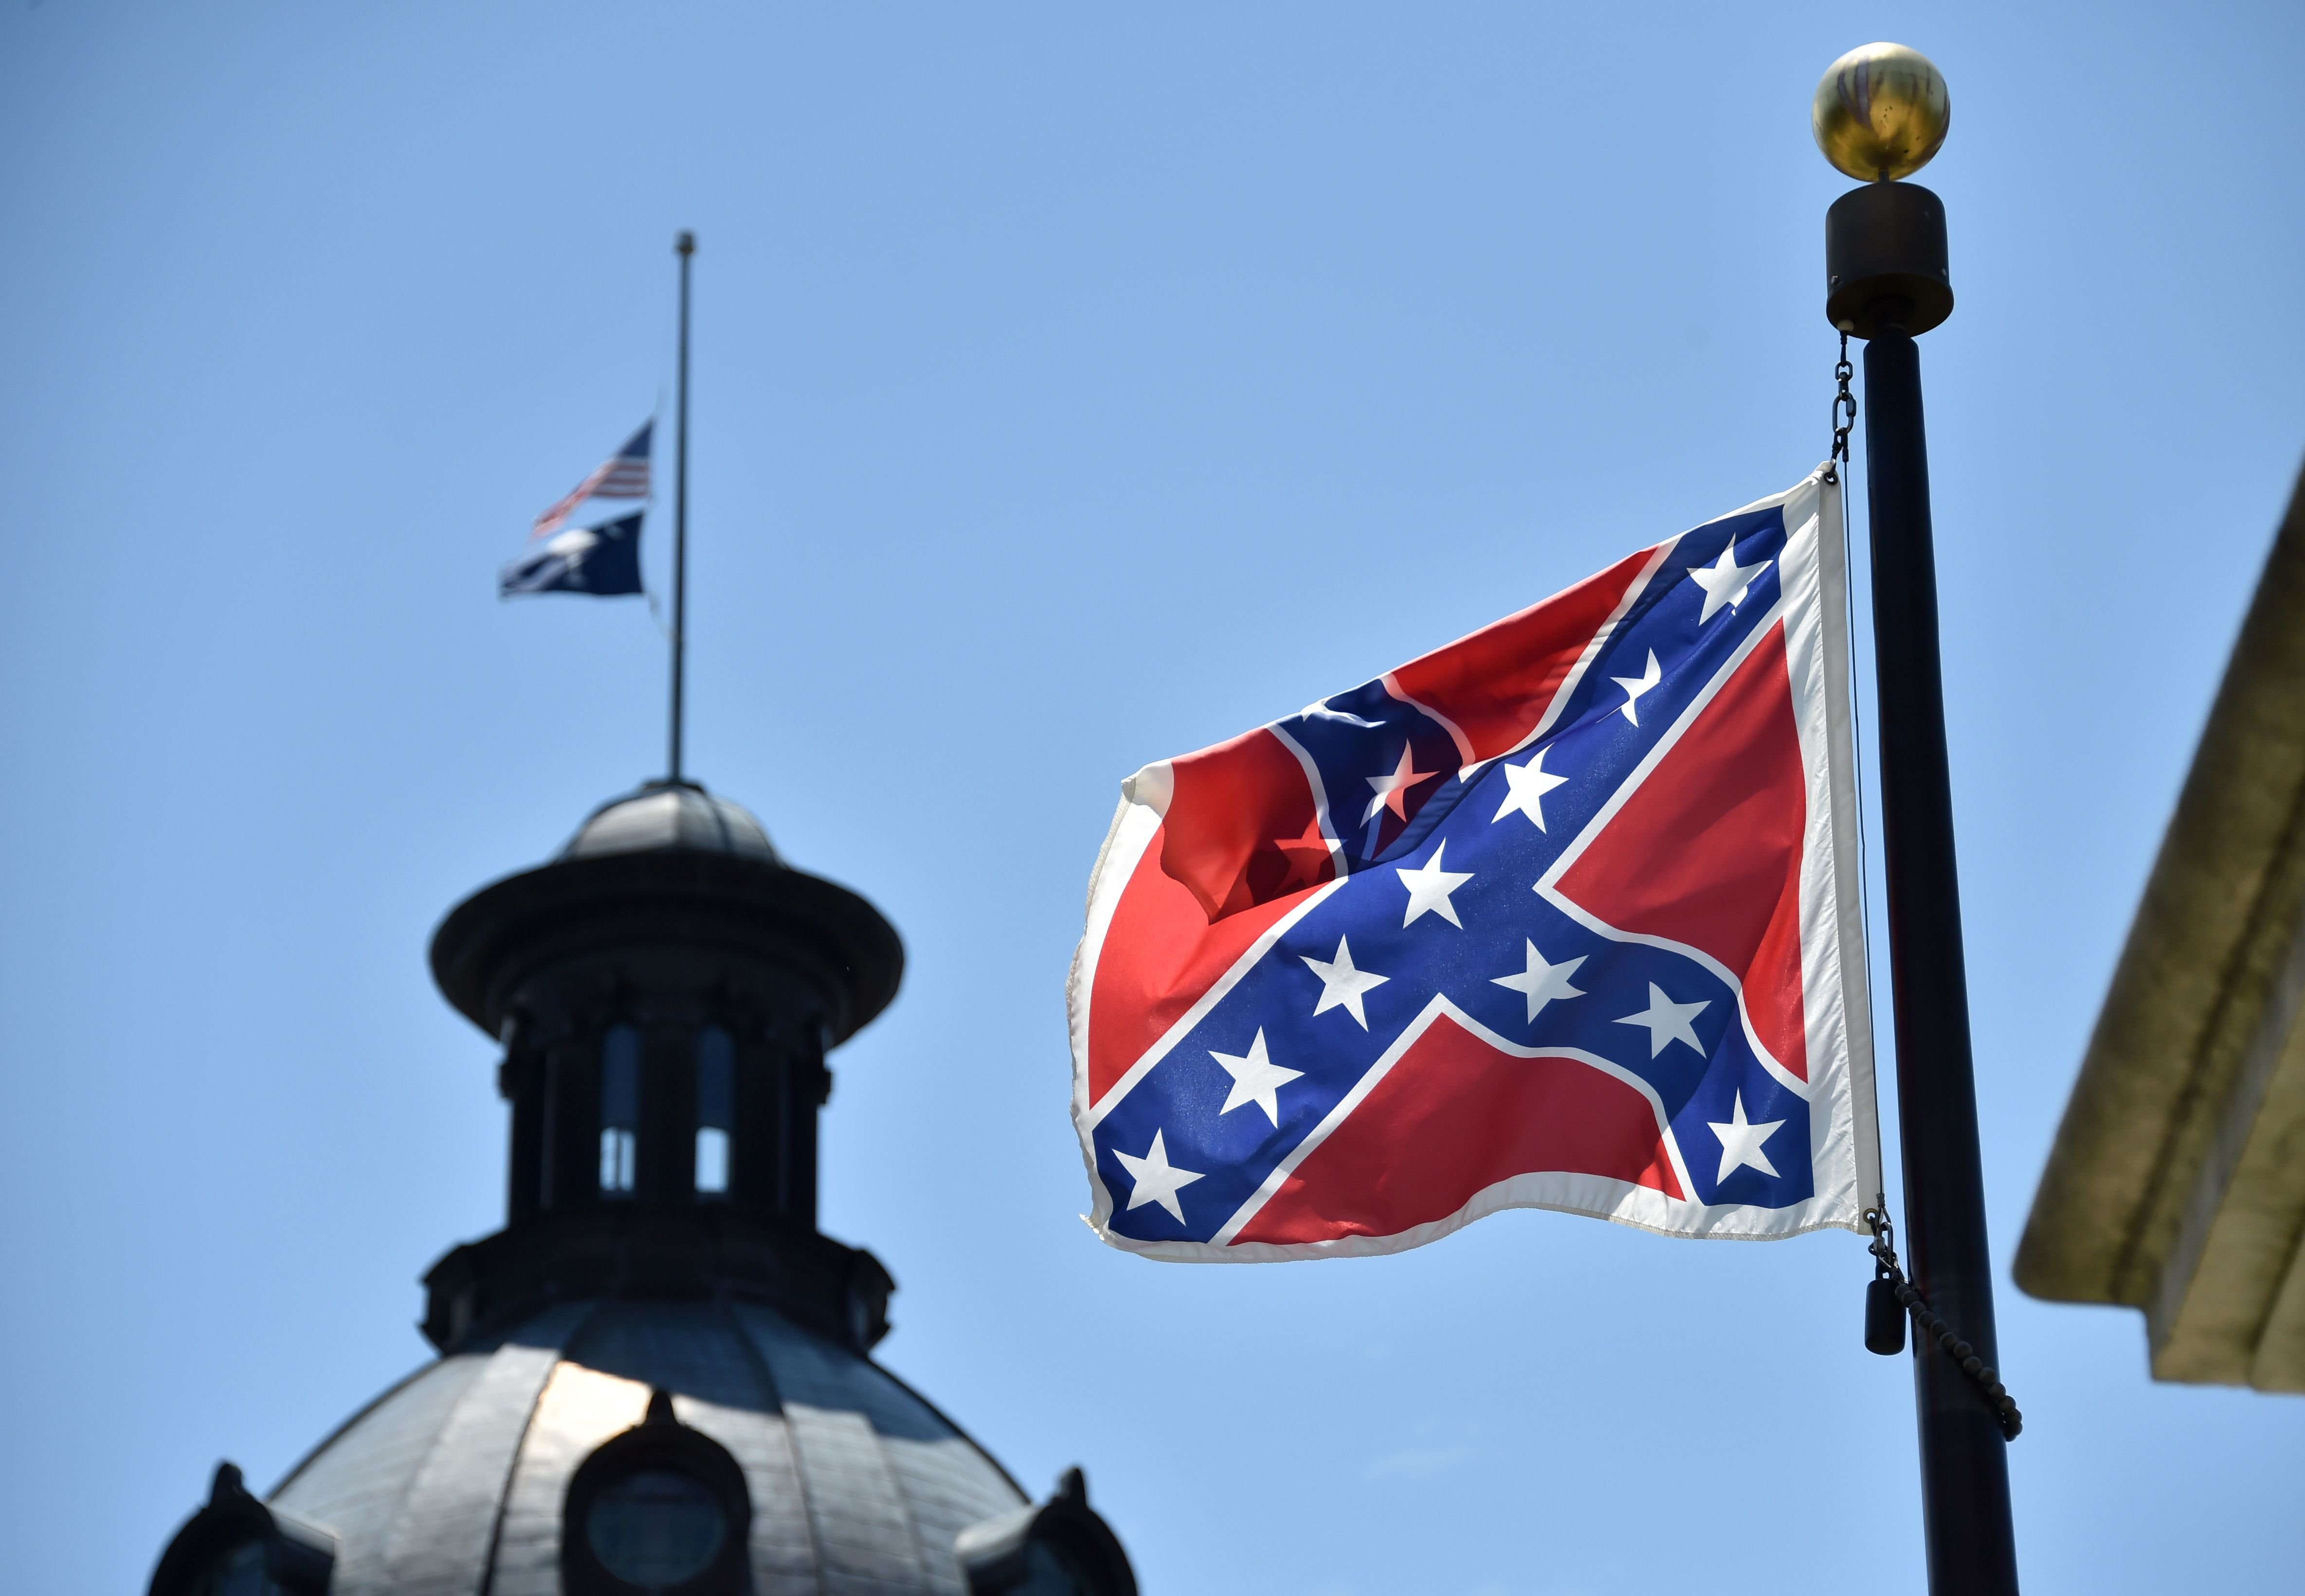 The South Carolina and US  flags are seen flying at half-staff behind the Confederate flag erected in front of the State Congress building in Columbia, South Carolina on June 19, 2015.